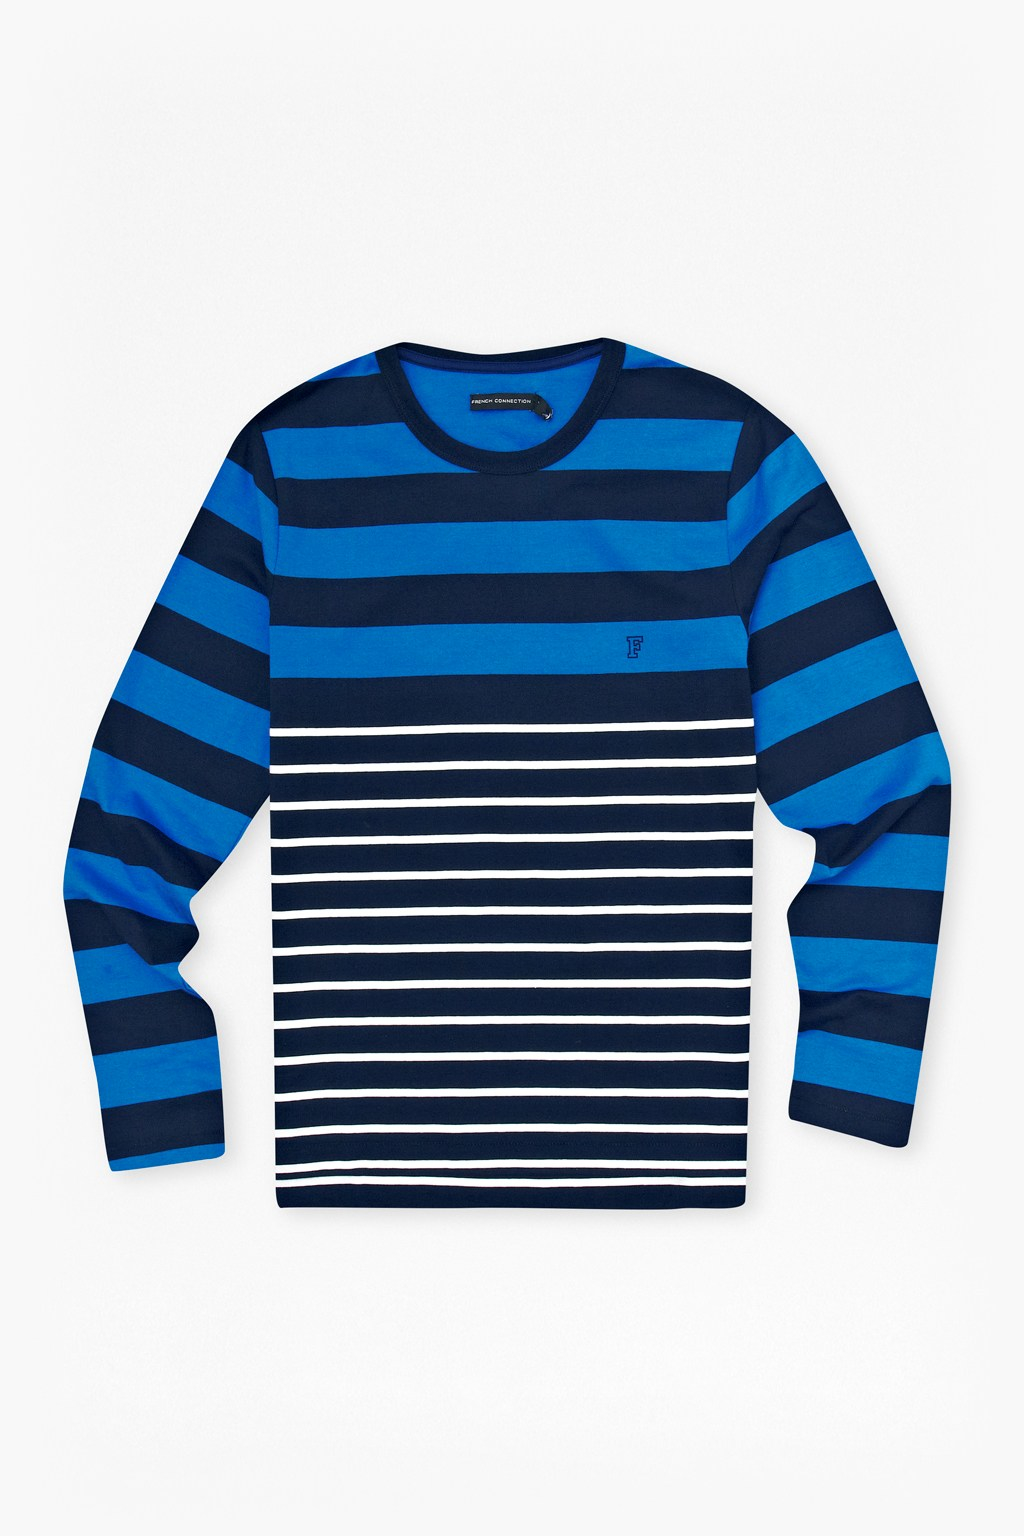 French connection craven stripe long sleeve t shirt in Striped long sleeve t shirt